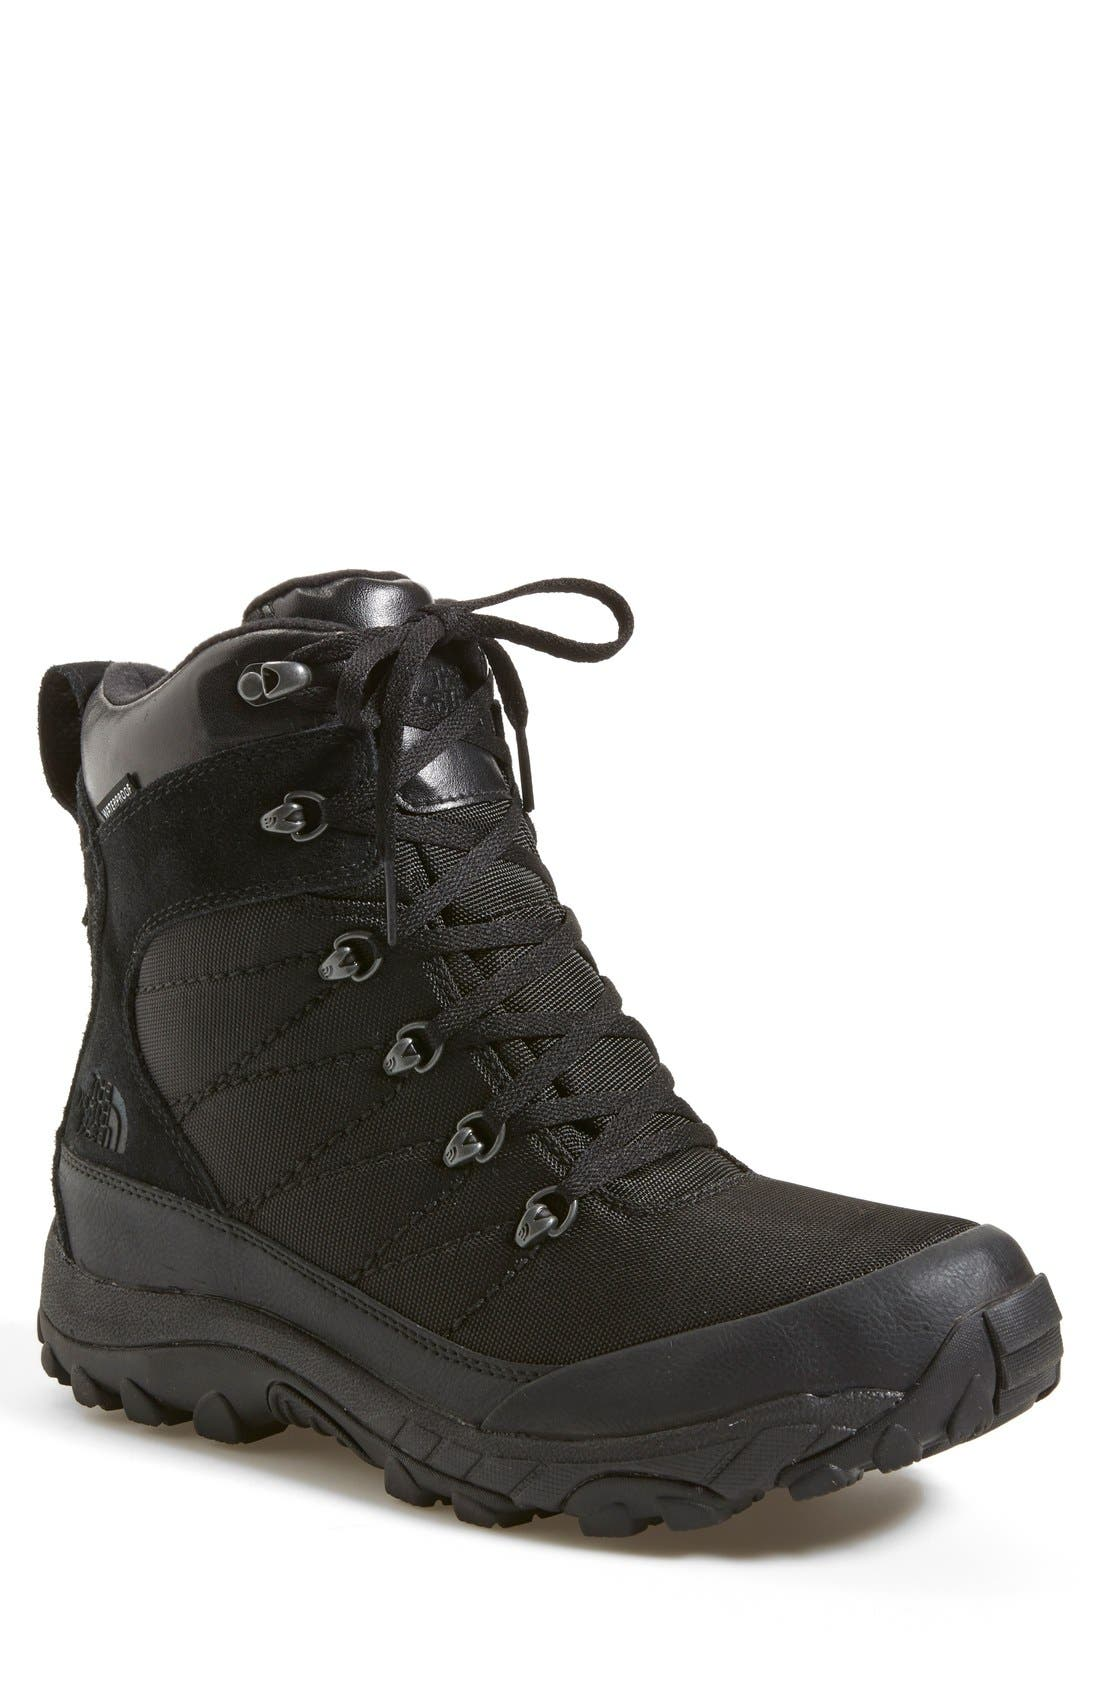 'Chilkat' Snow Boot,                             Main thumbnail 1, color,                             Tnf Black/ Tnf Black